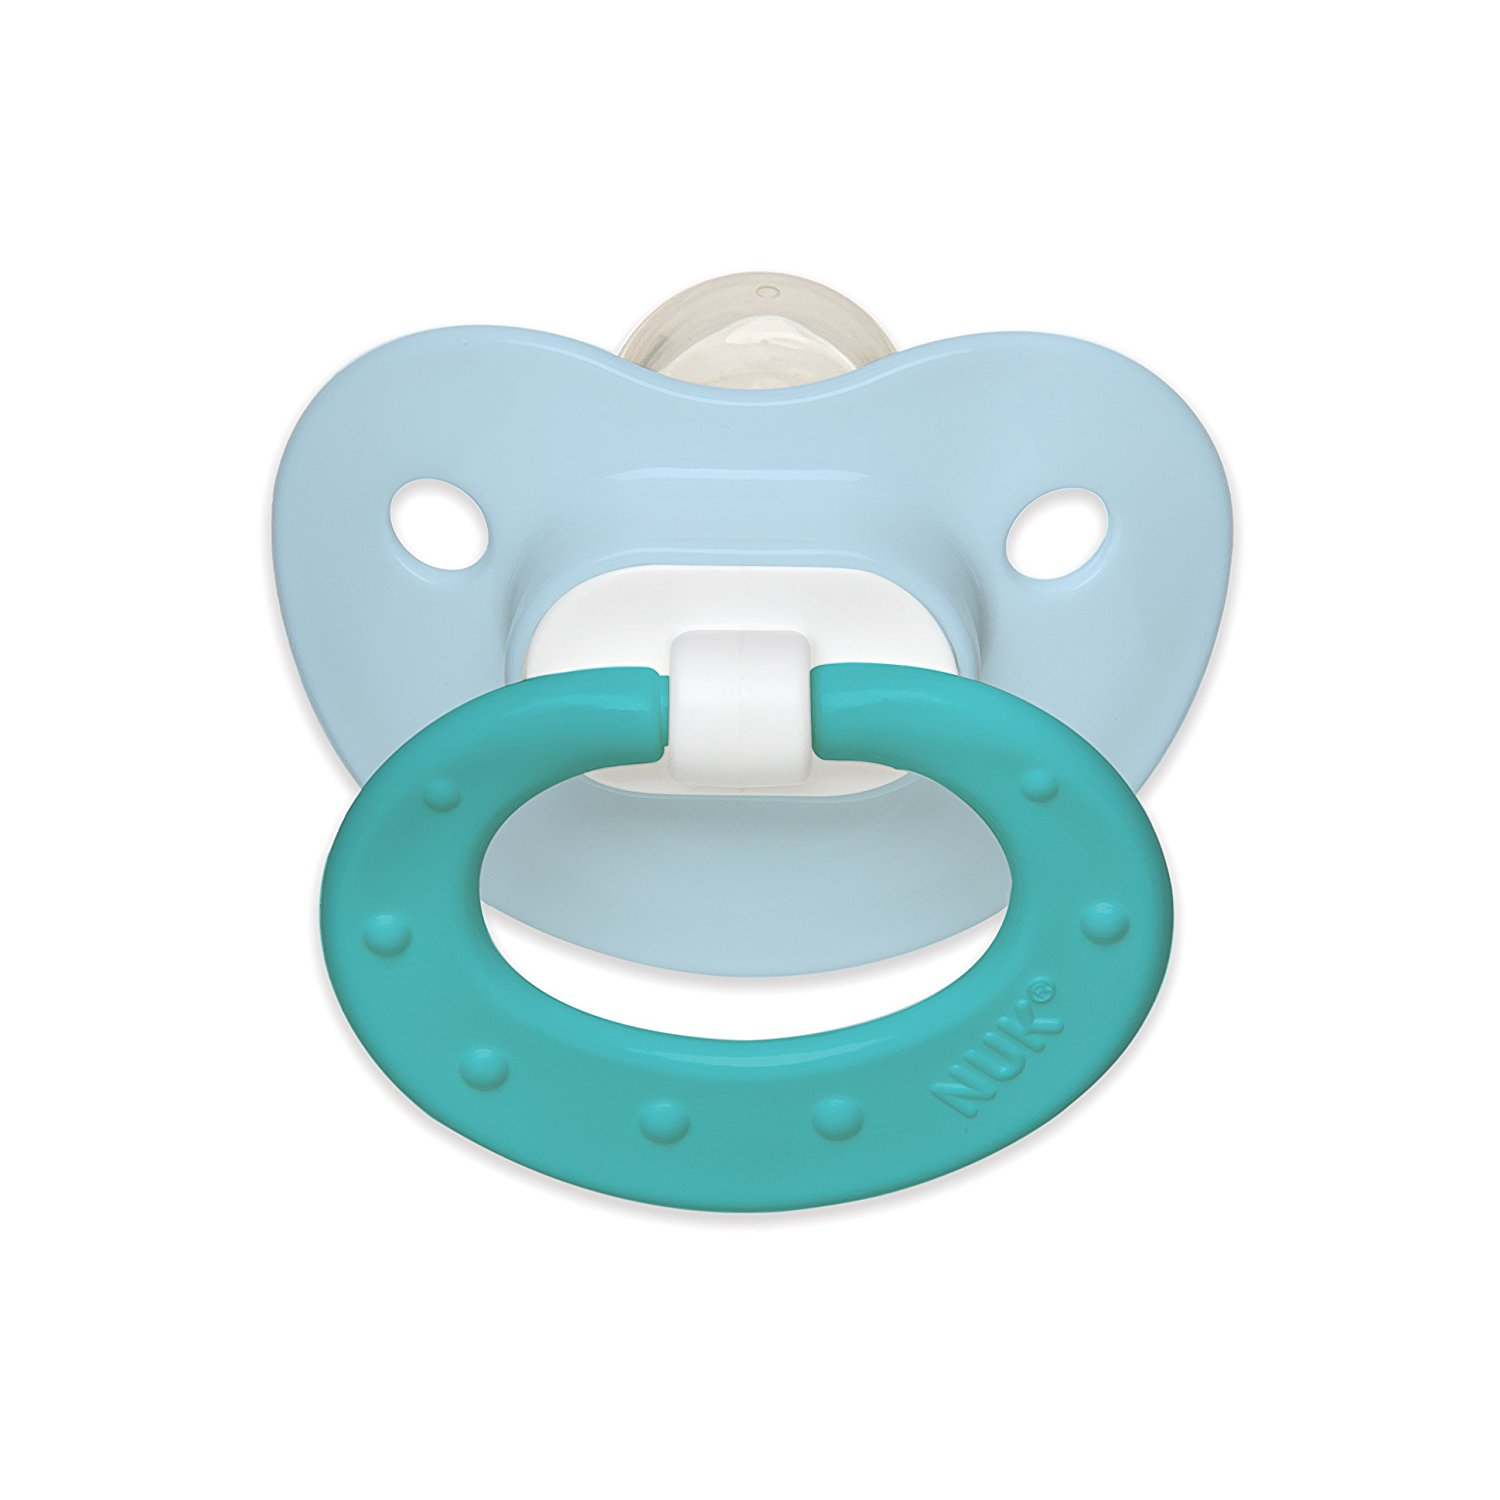 Newborn & Infant Nursing Reviews Best Pacifier Reviews Of 2019 At Topproducts